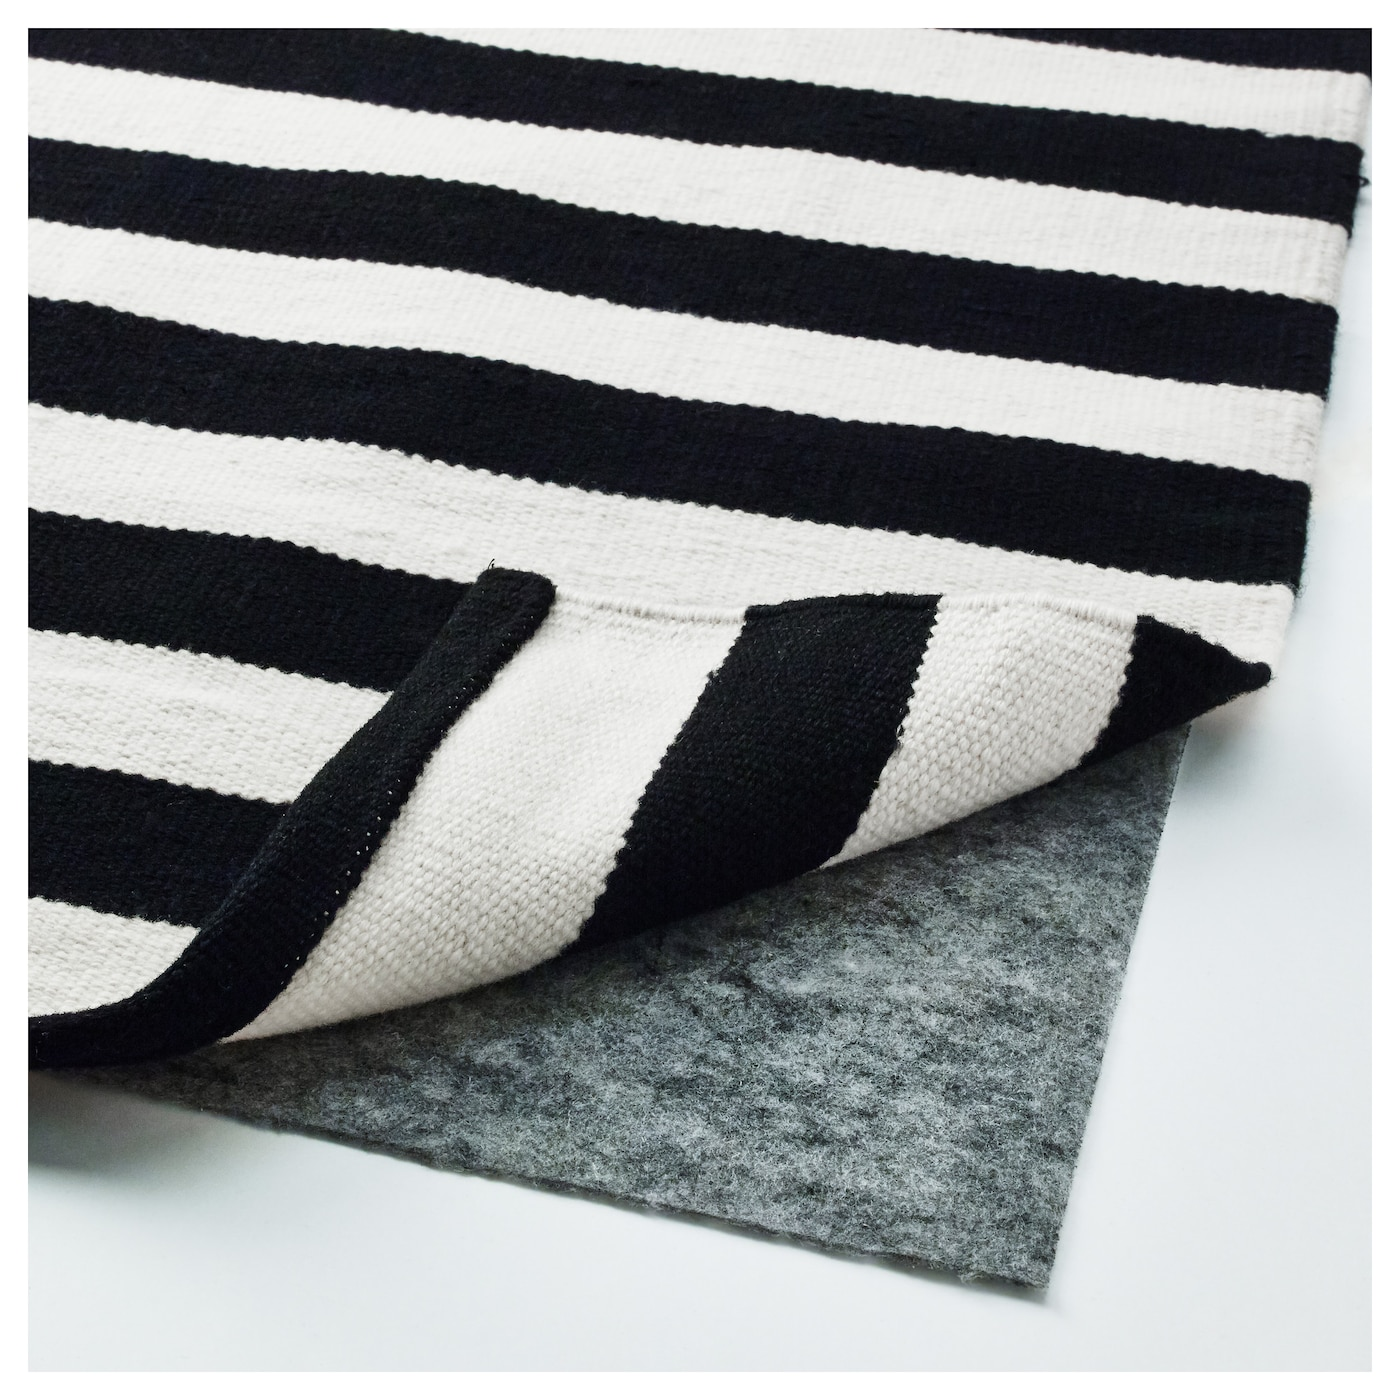 stockholm rug flatwoven handmade striped black off white. Black Bedroom Furniture Sets. Home Design Ideas